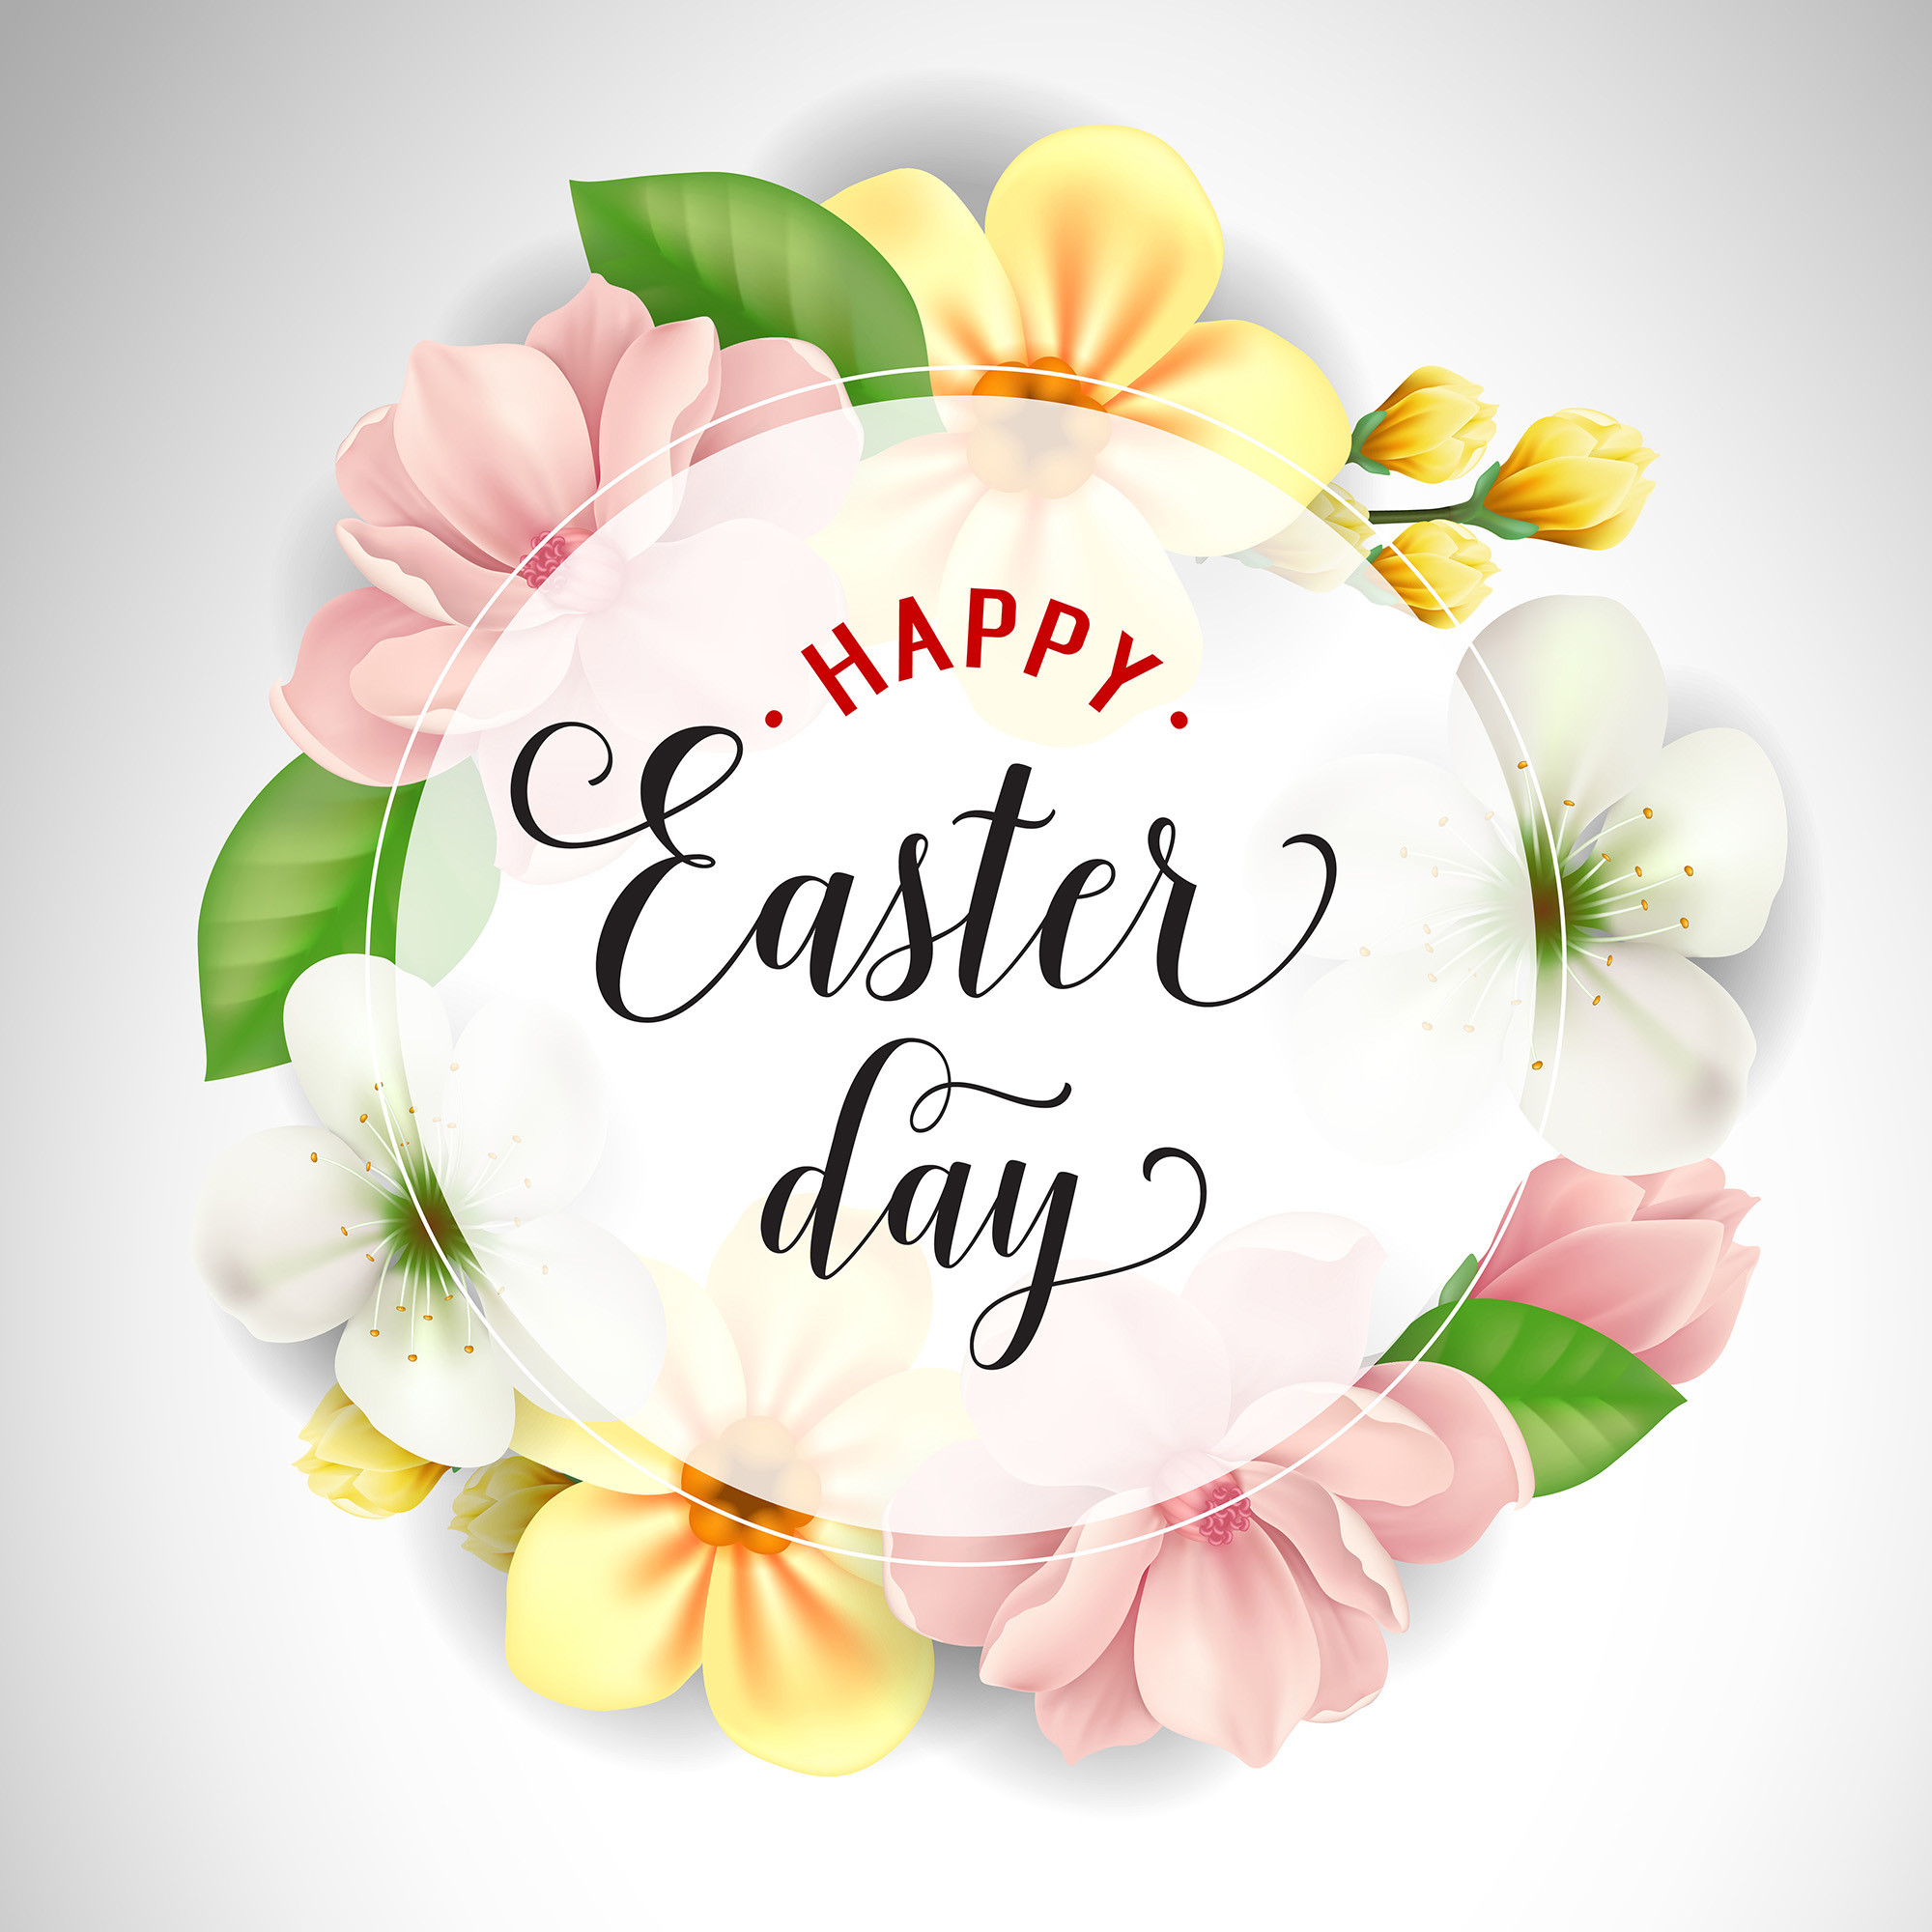 Happy Easter Day Inscription in Circle